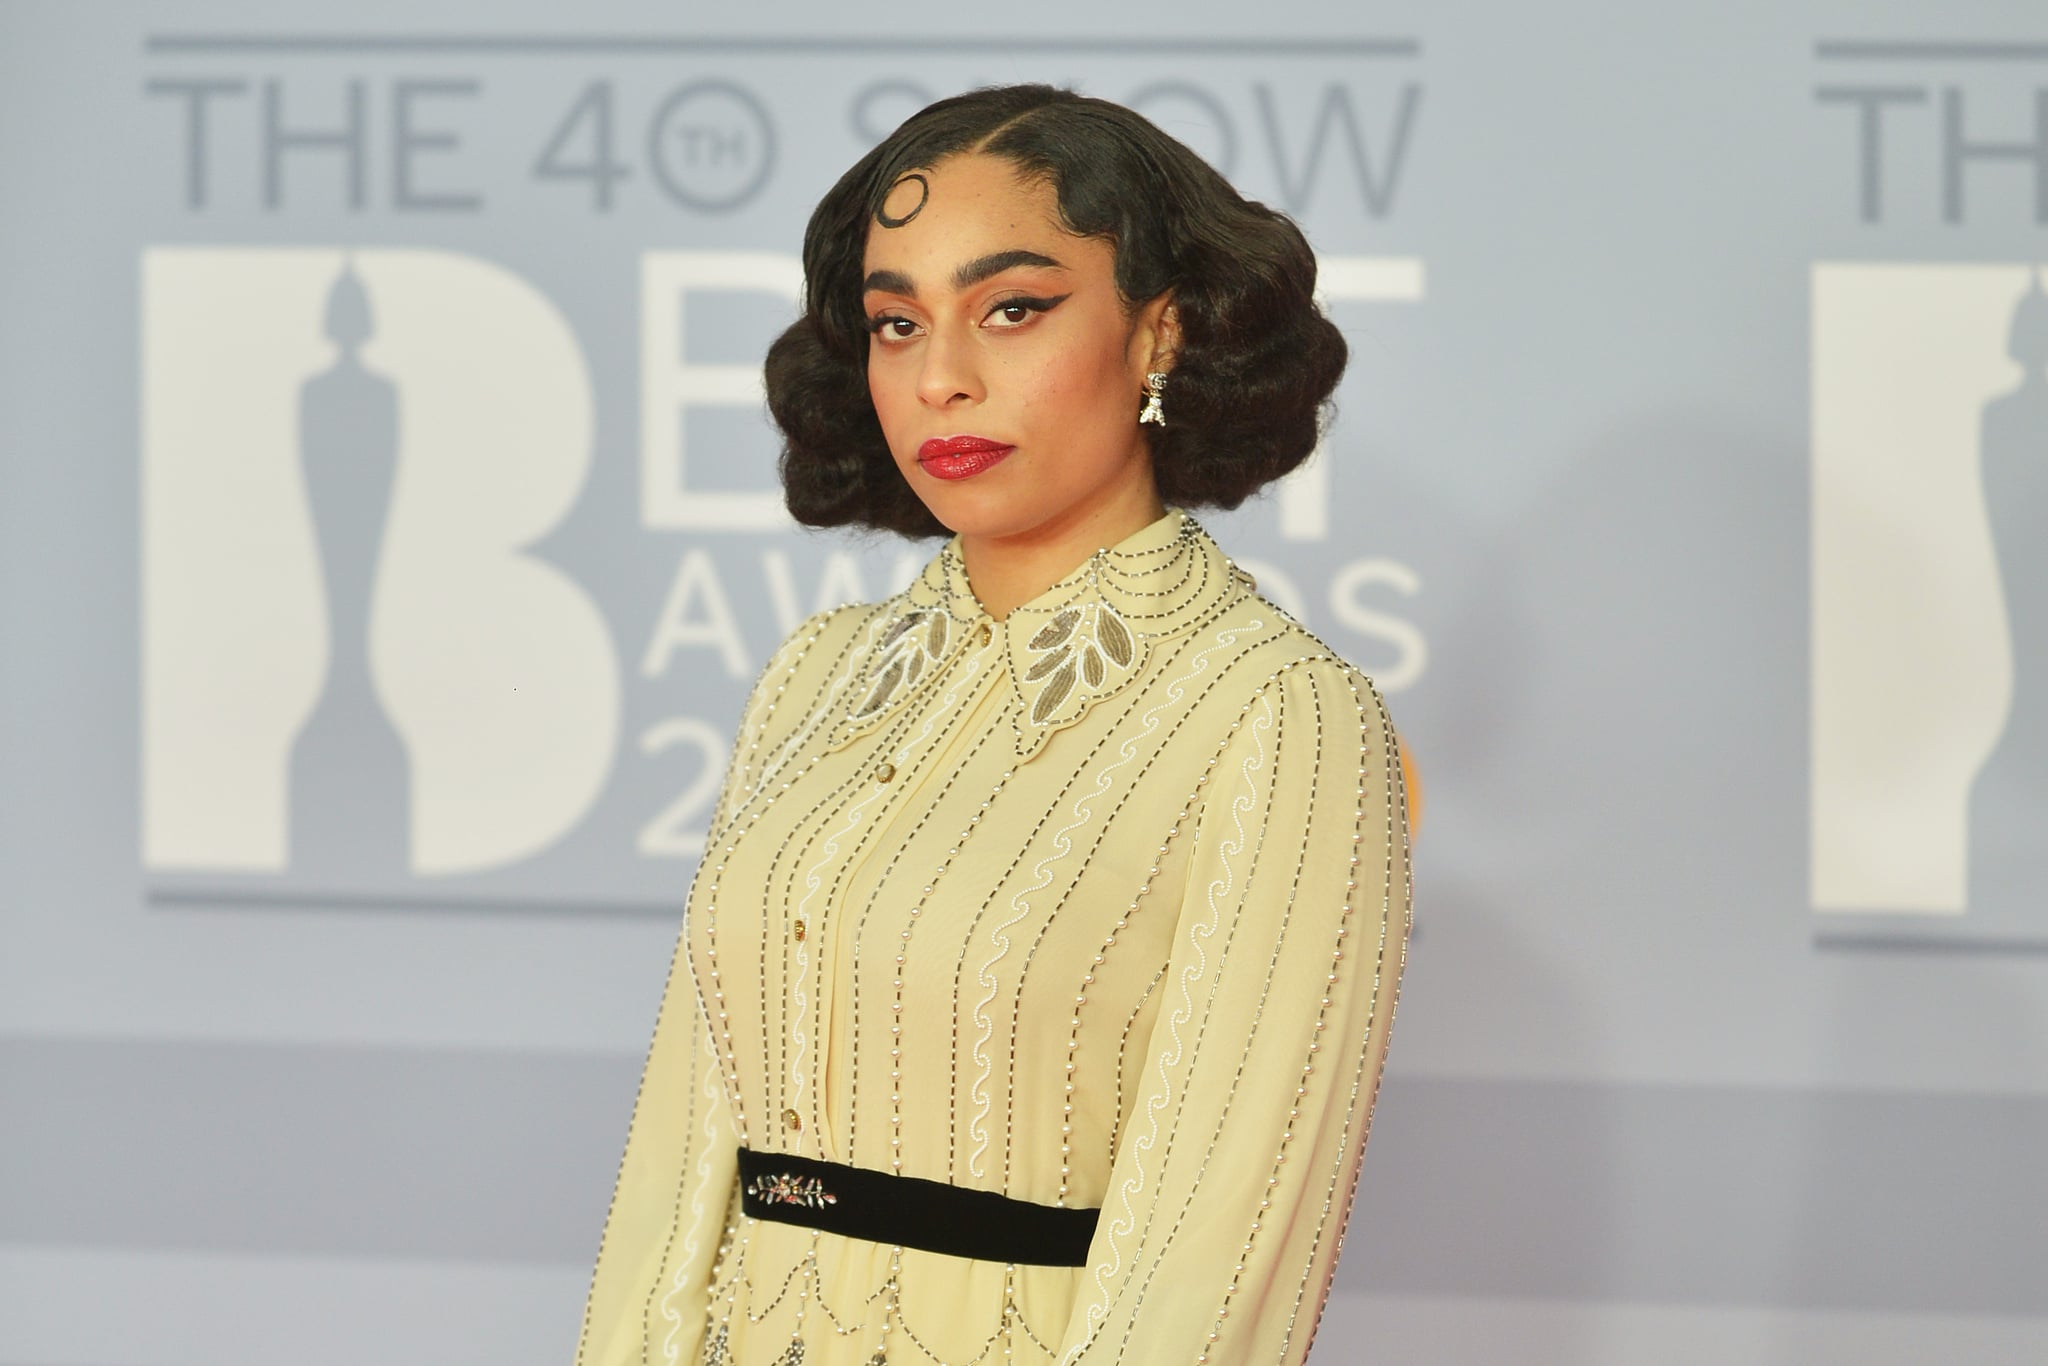 LONDON, ENGLAND - FEBRUARY 18: (EDITORIAL USE ONLY)  Celeste attends The BRIT Awards 2020 at The O2 Arena on February 18, 2020 in London, England. (Photo by Jim Dyson/Redferns)